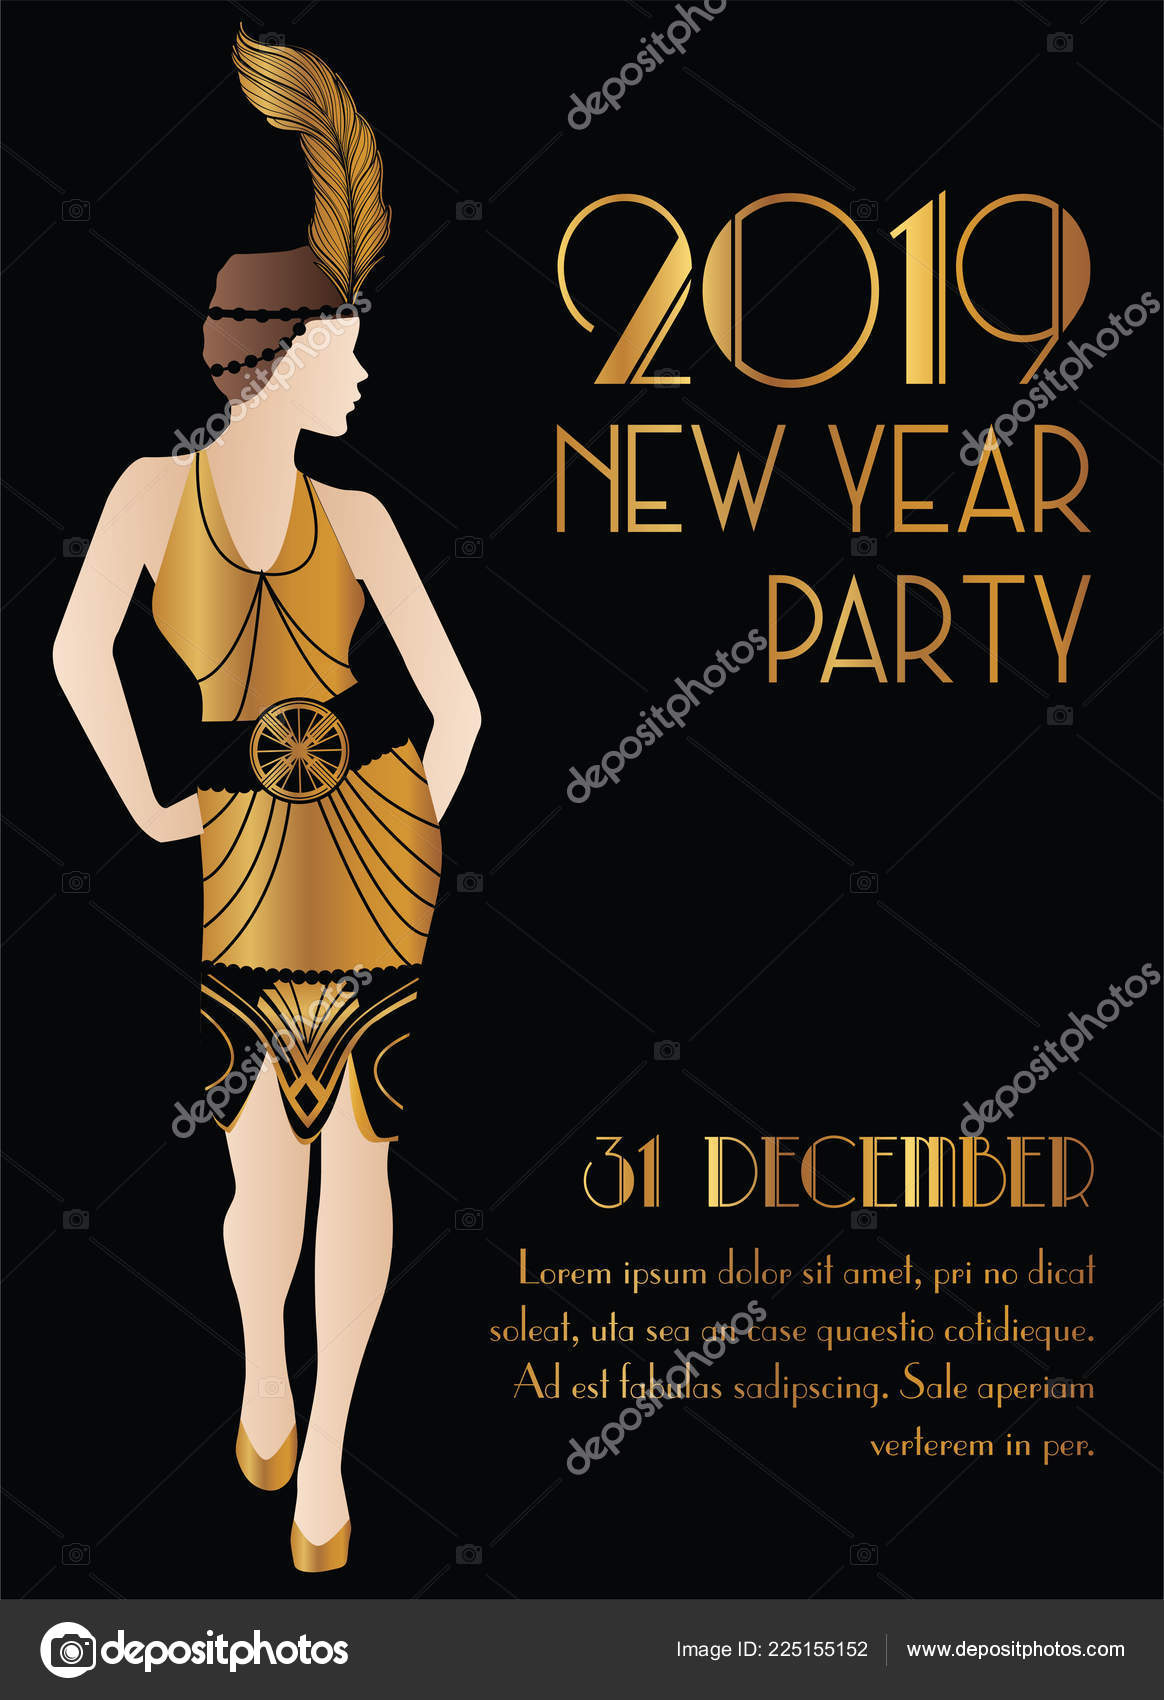 2019 New Year Gatsby Art Deco Style Party Invitation Design Stock